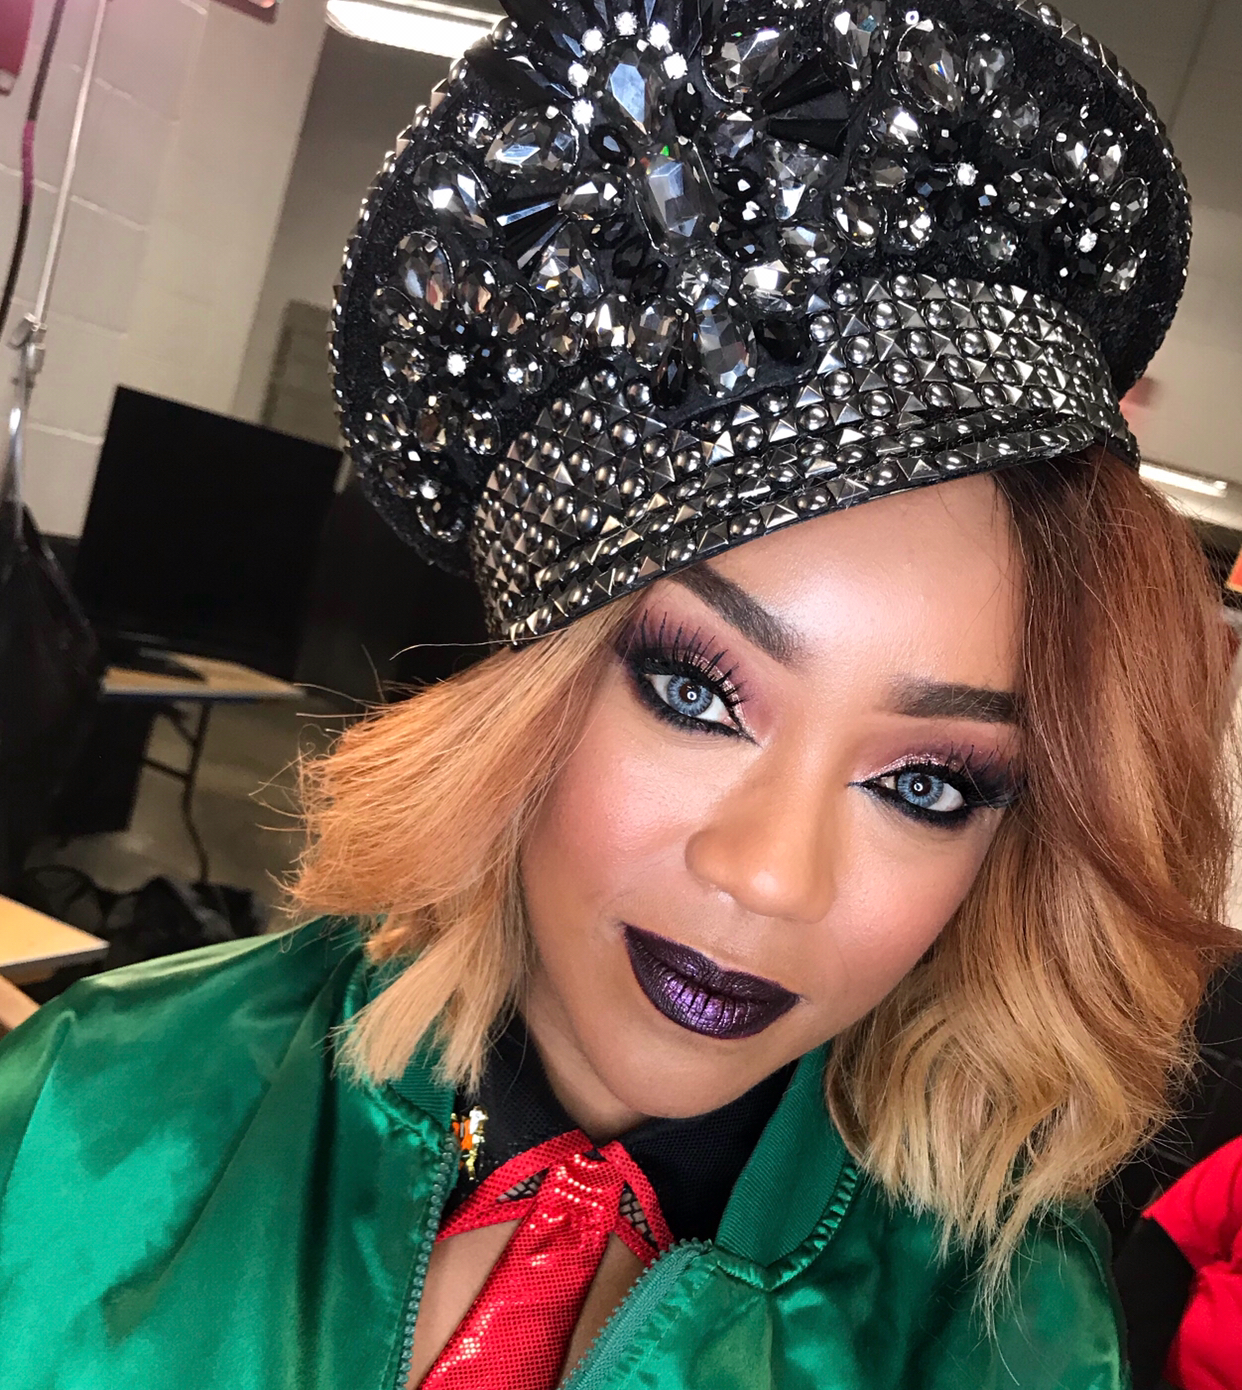 Alicia Fox WWE  (Makeup)